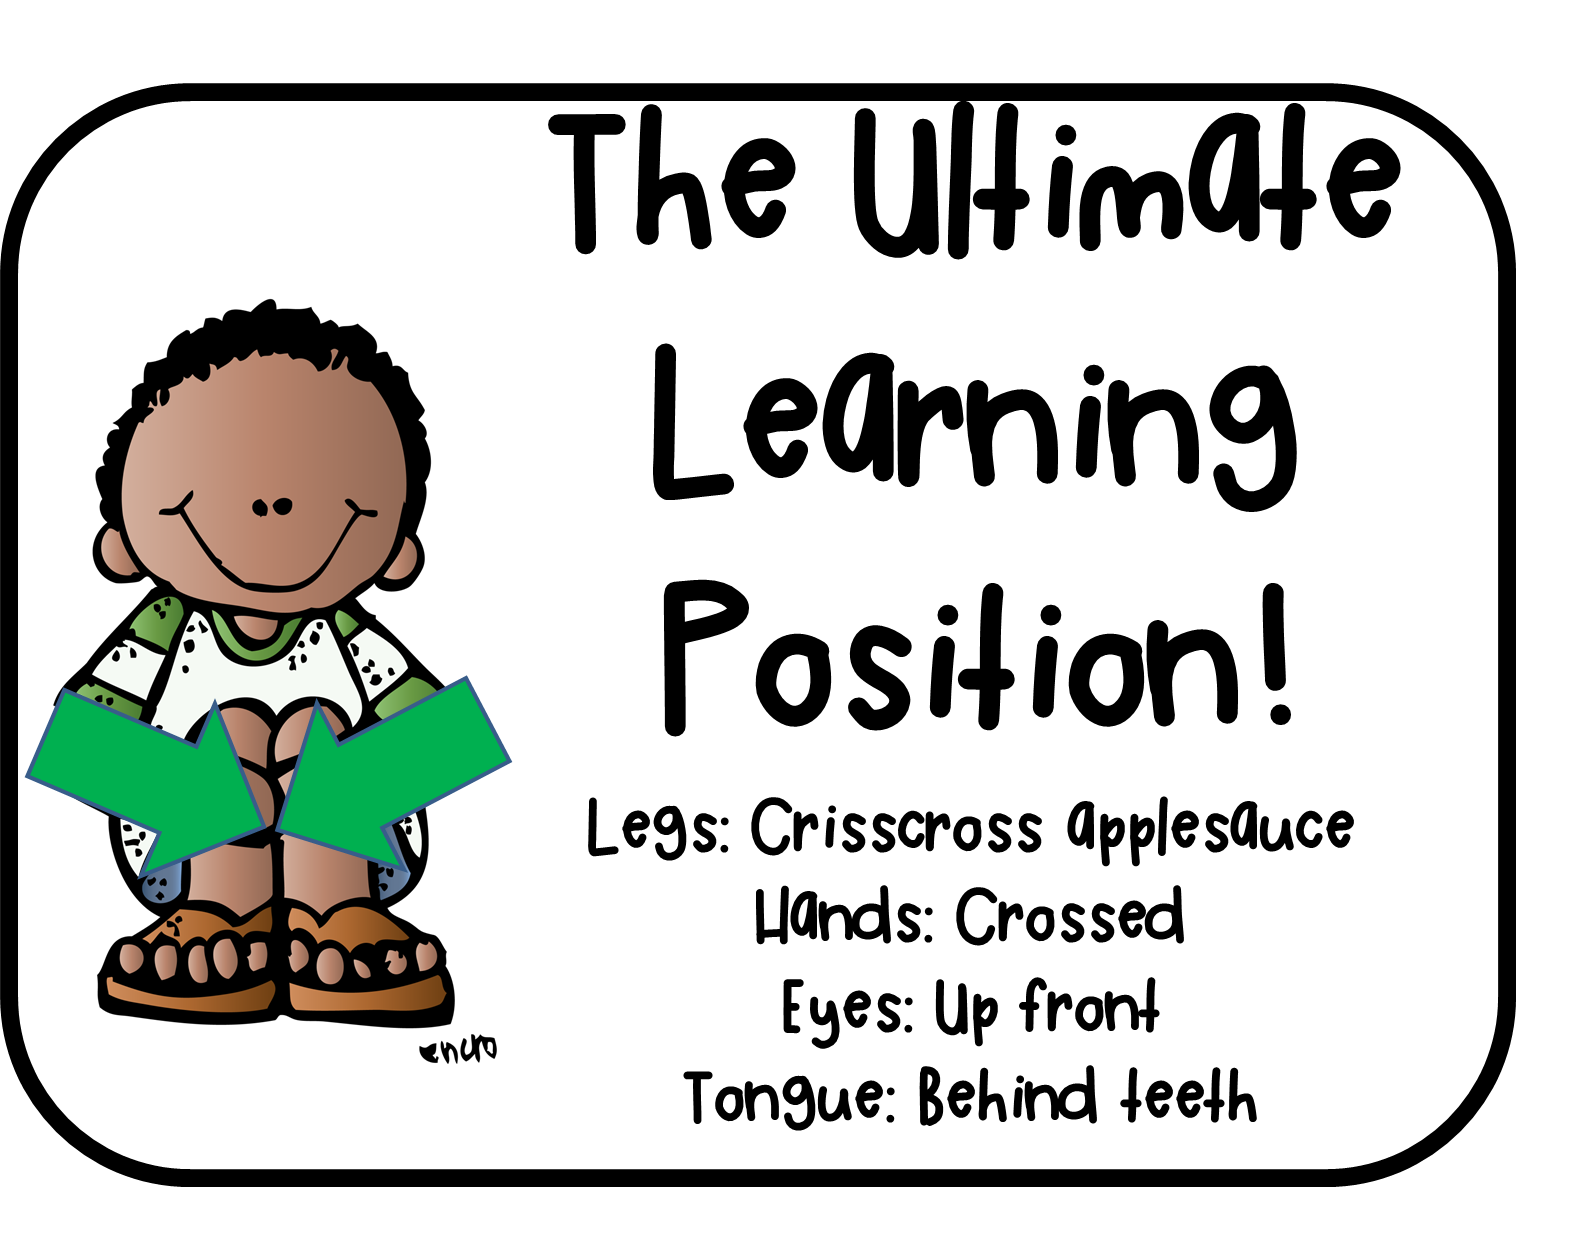 Clipart child sitting criss cross jpg library library Welcome to The Schroeder Page!: Brain Gym and The Ultimate Learning ... jpg library library